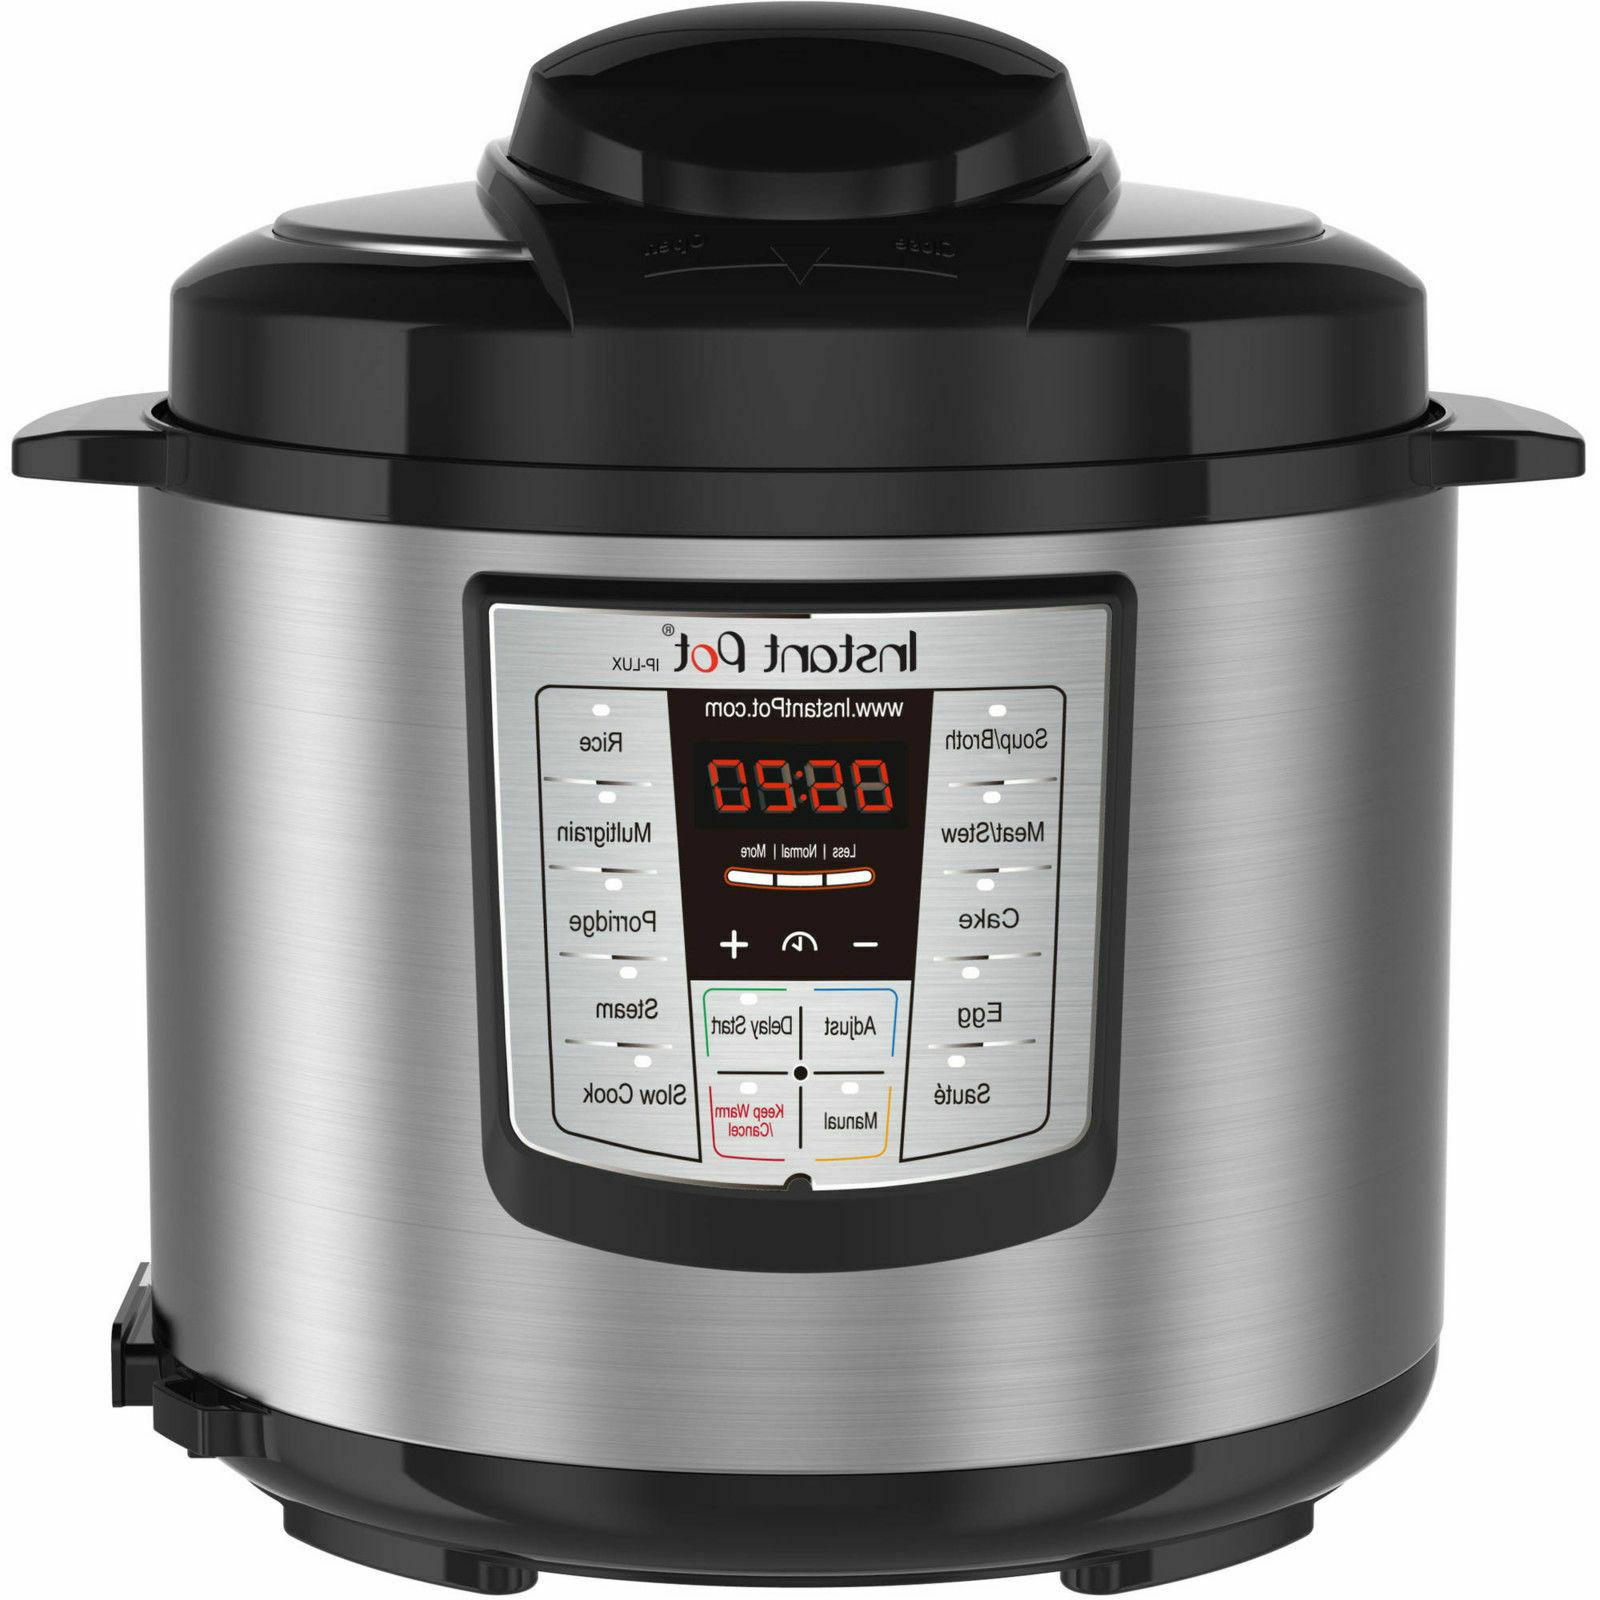 Programmable Pressure Slow Cooker 6 Qt 6-in-1 Multi-Use Rice